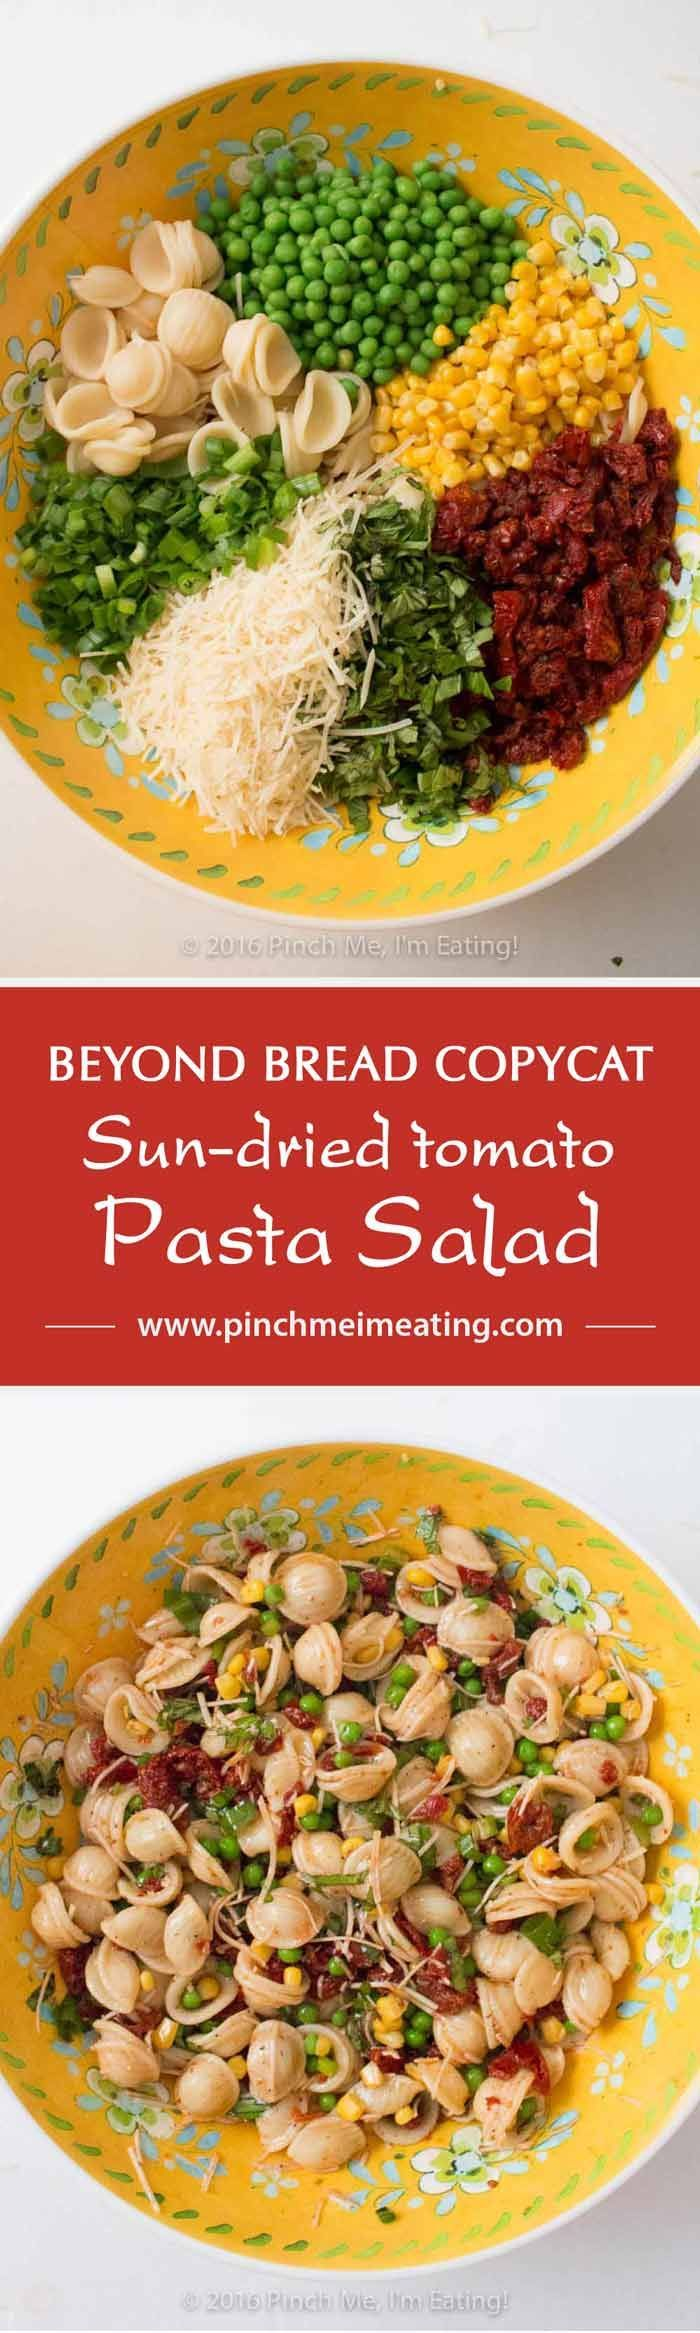 Full of fresh basil and veggies, this lightly dressed sun-dried tomato pasta salad is a refreshing and flavorful side dish for sandwiches, a potluck, or a light lunch! Copycat recipe from Beyond Bread in Tucson, AZ.   www.pinchmeimeati...